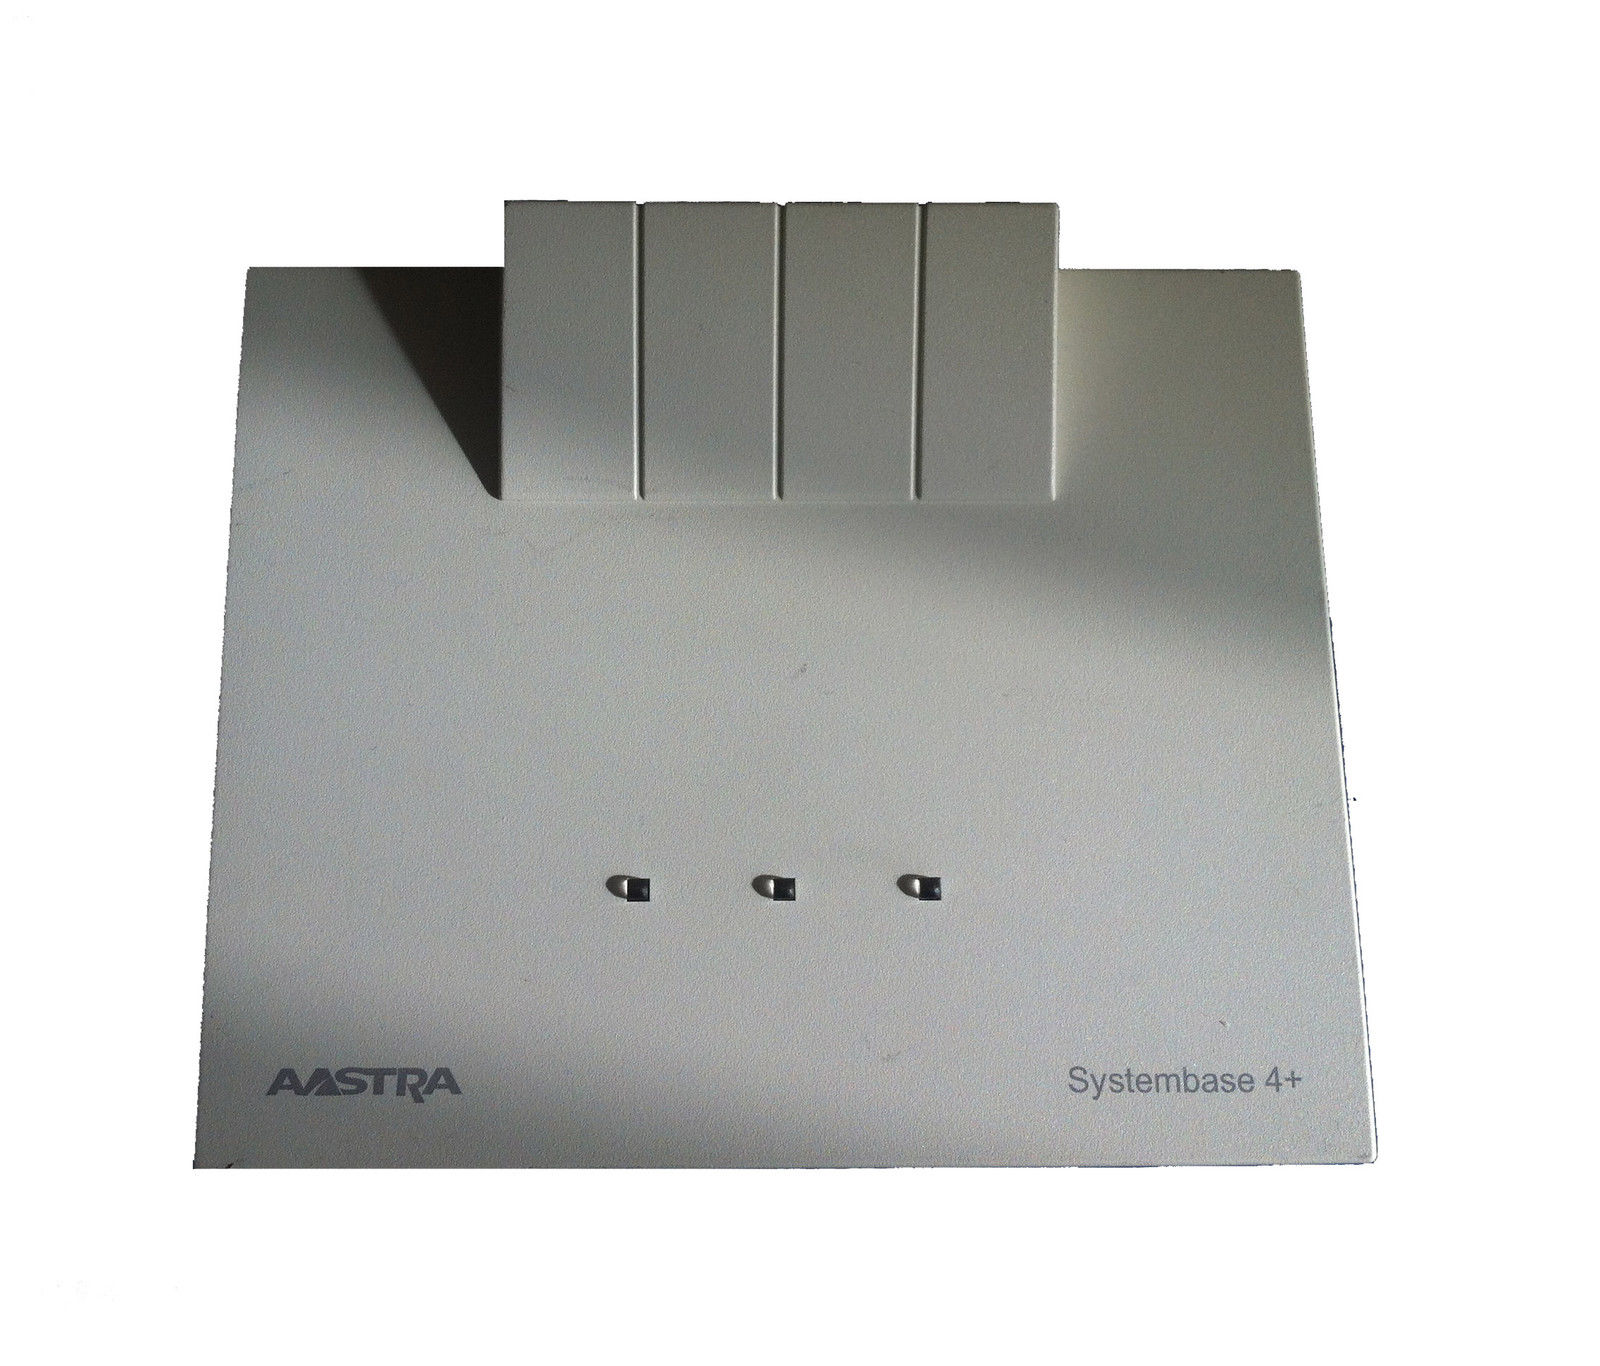 Aastra Systembase 4+ DECT Base Station